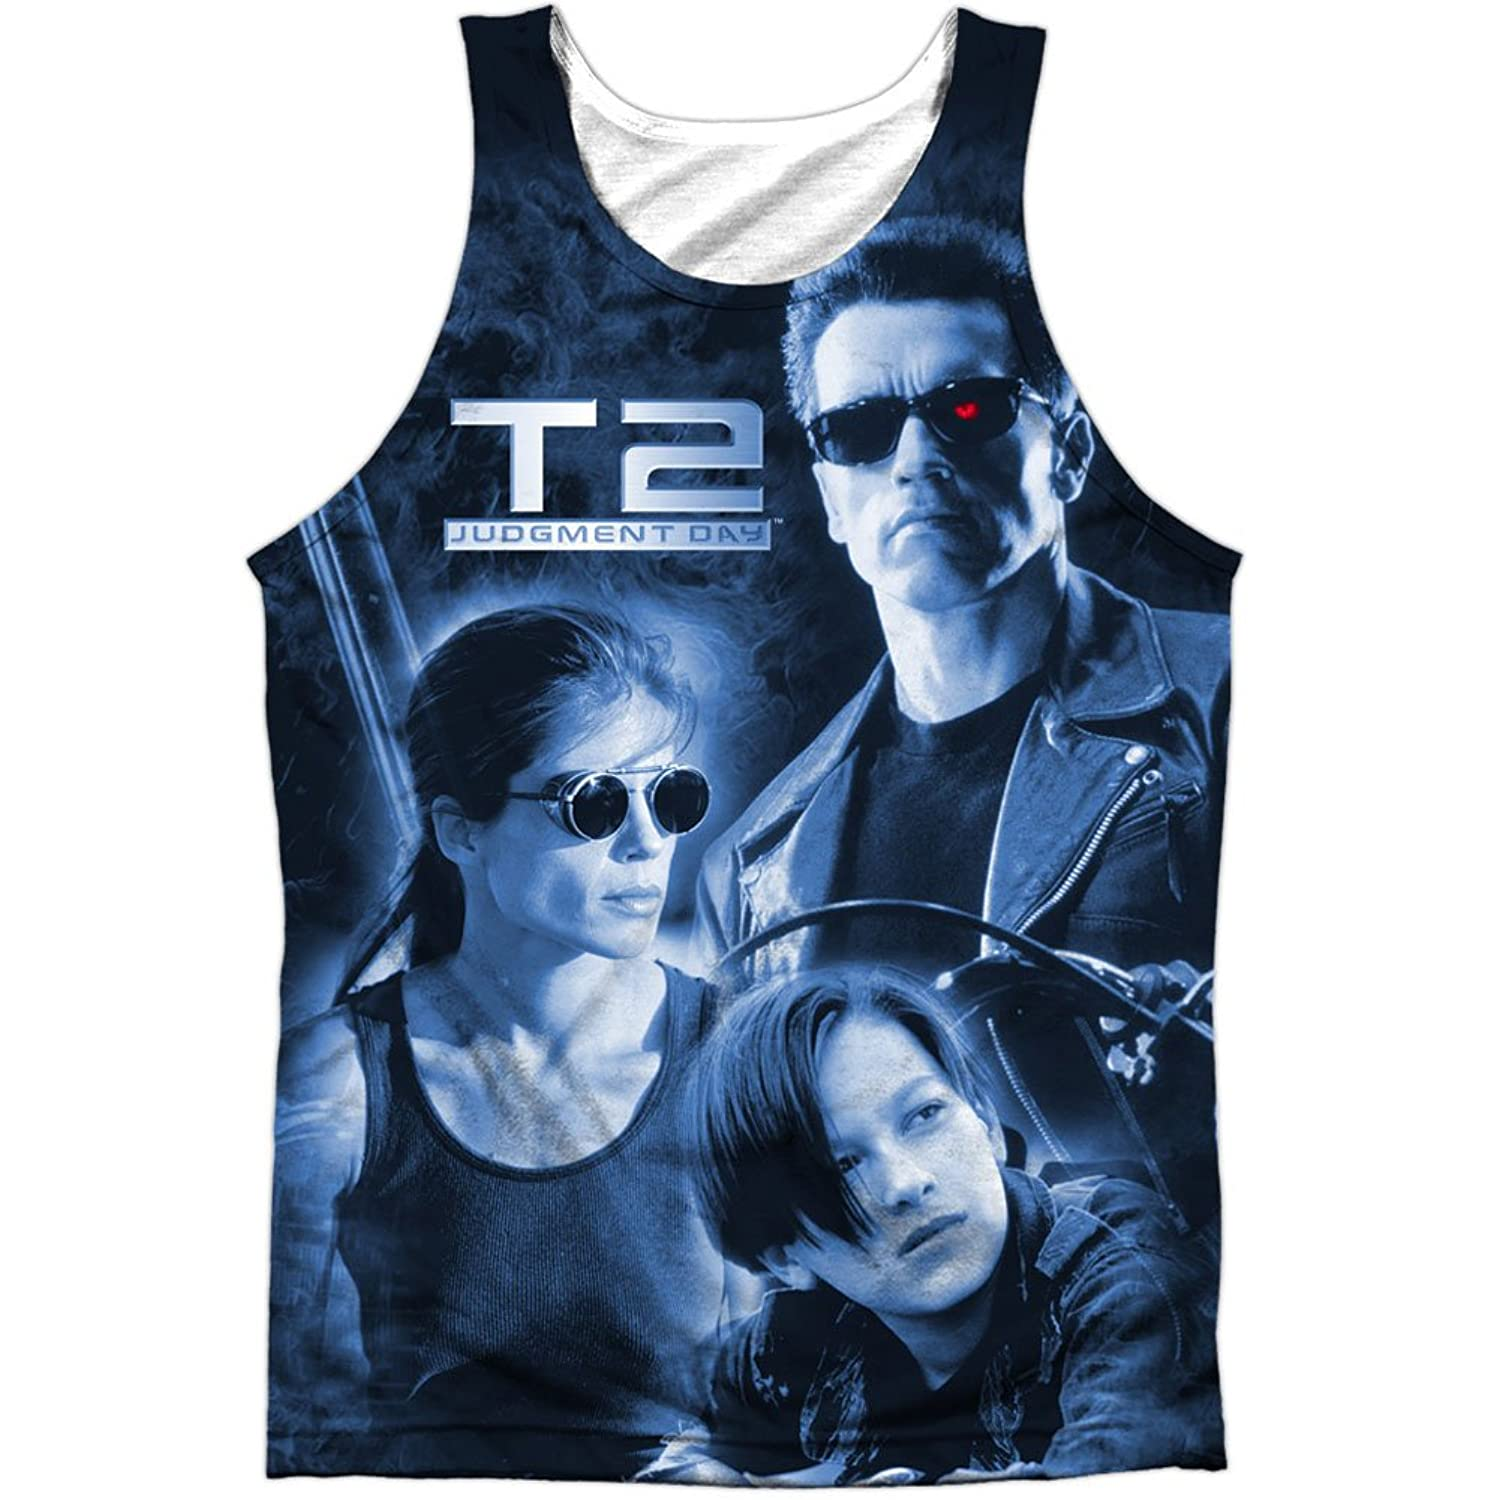 Terminator 2: Judgment Day Film Black & White Poster Front Print Tank Top Shirt